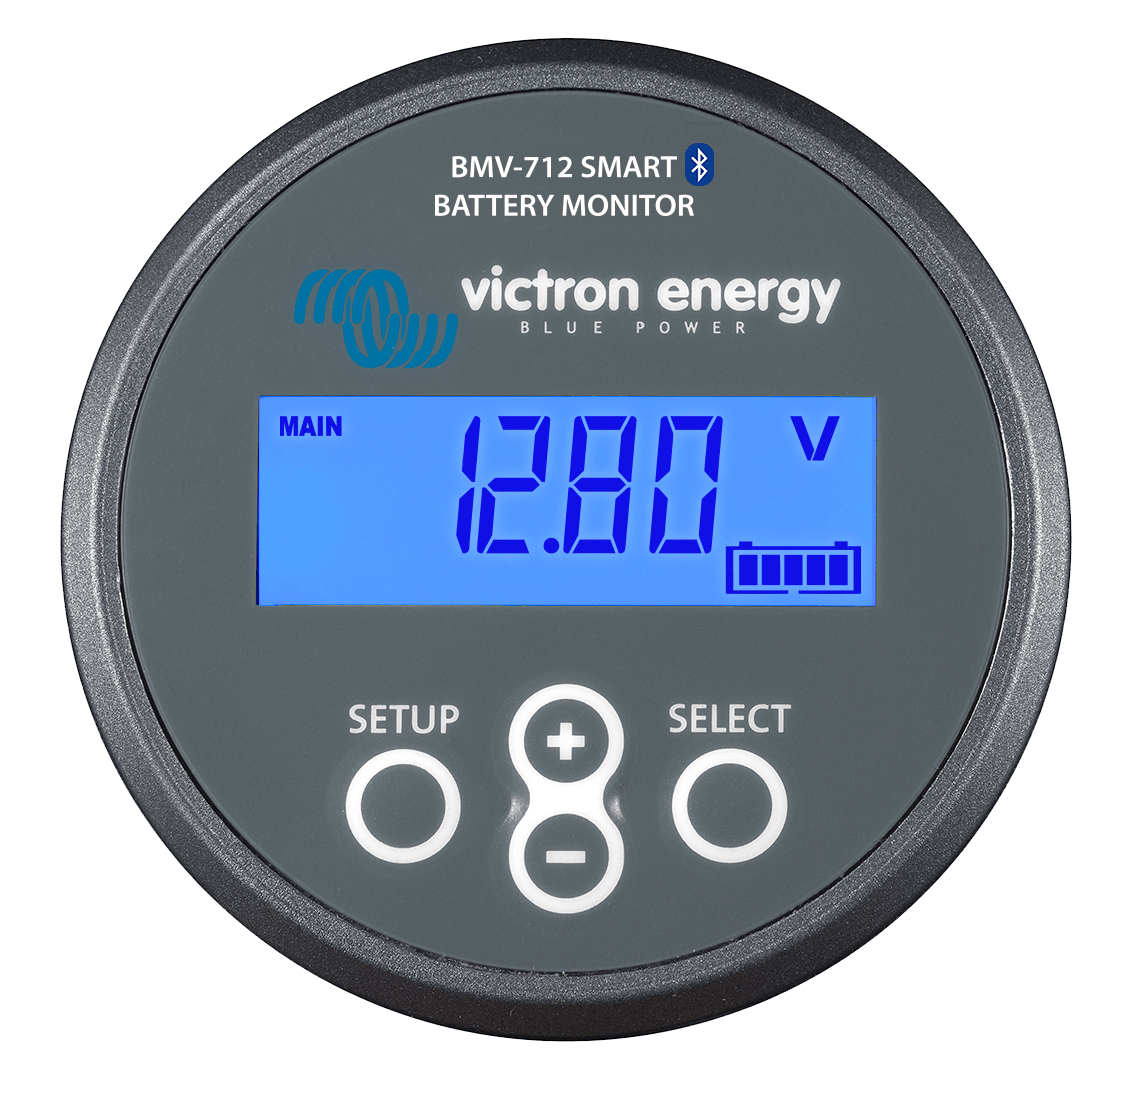 Victron Energy Smart BMV-712 battery monitor